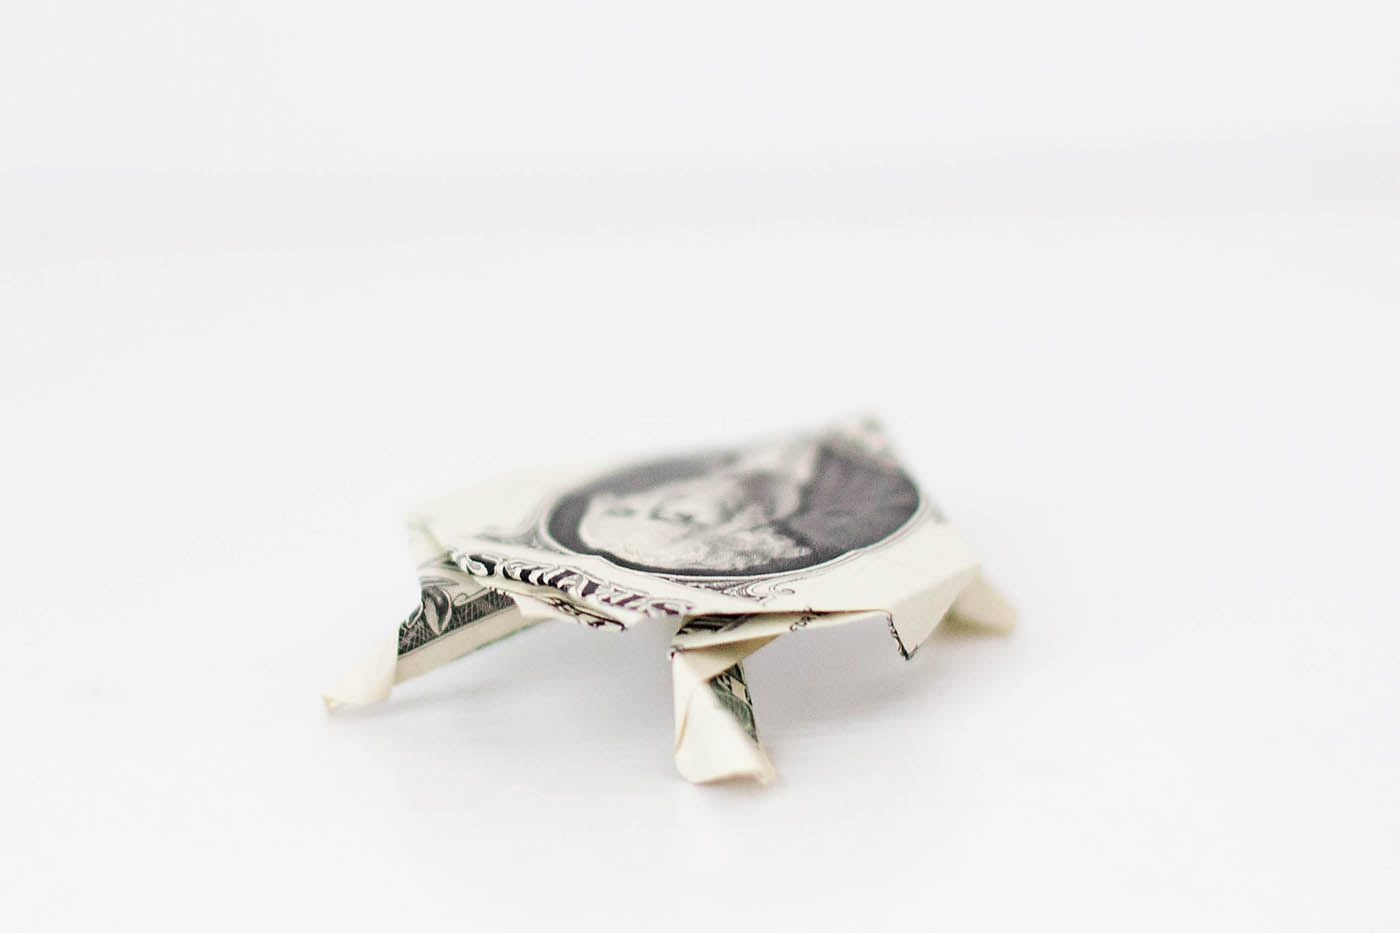 Origami dollar bill sea turtle